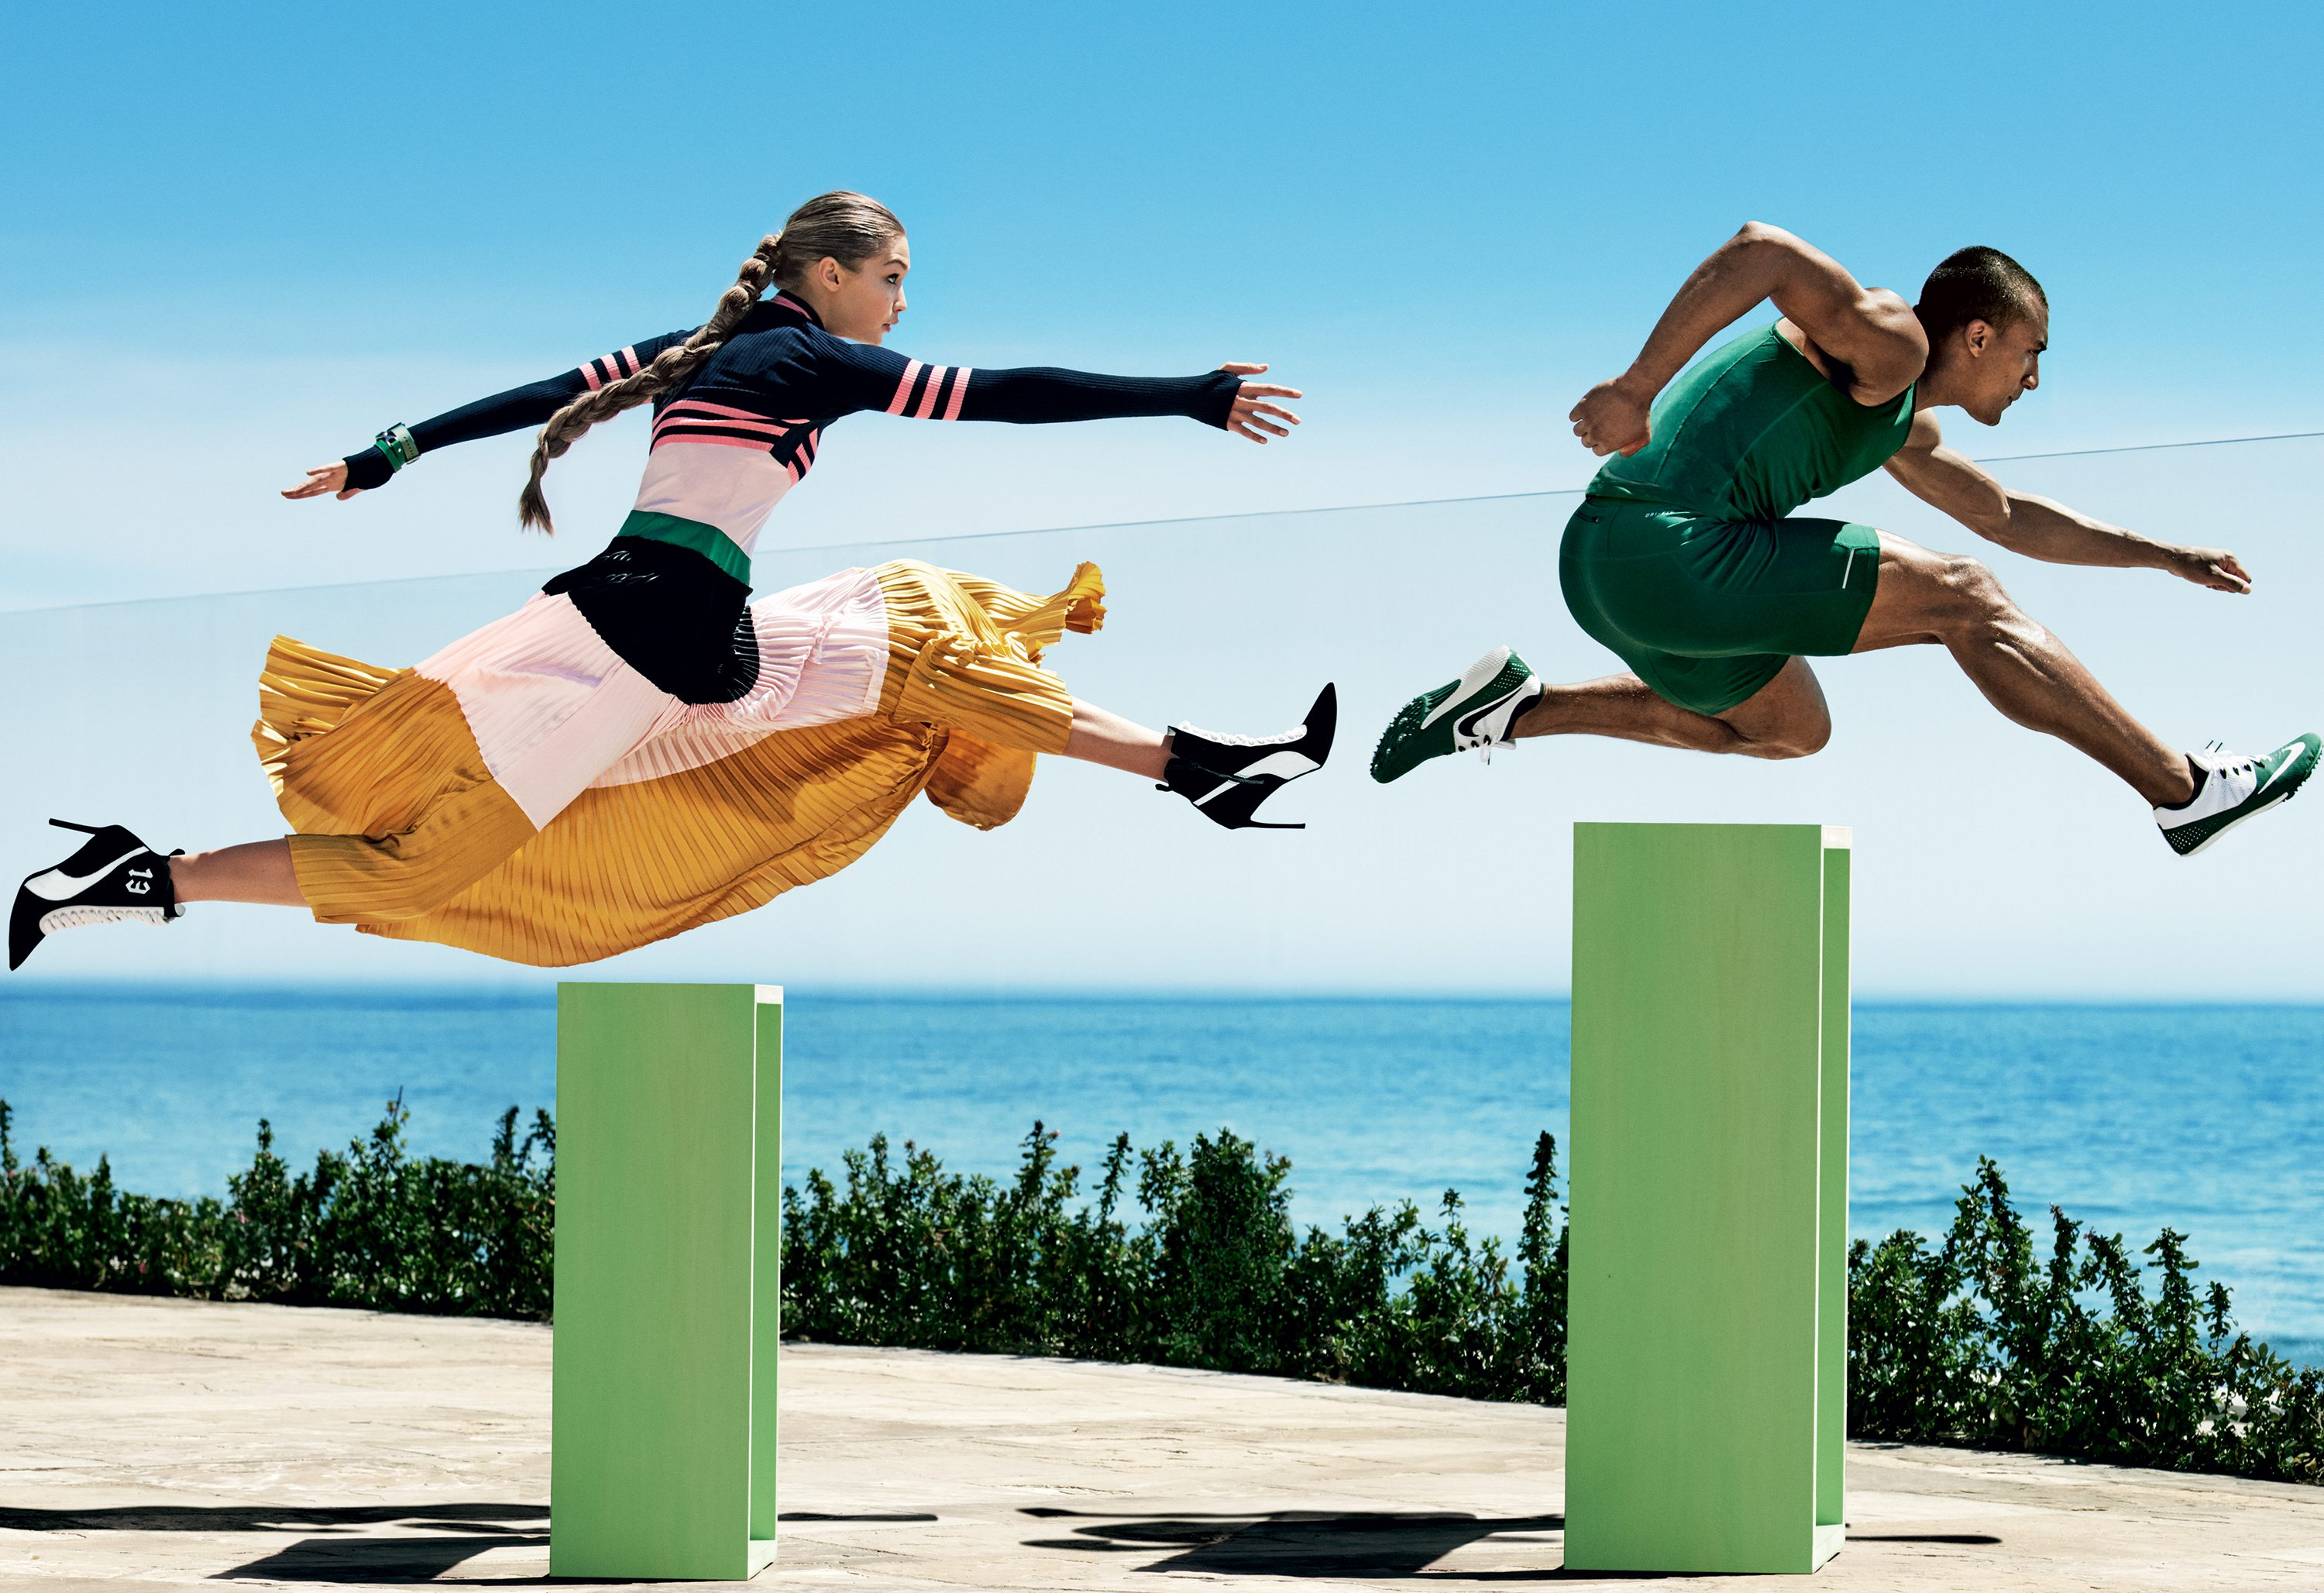 Vogue-US-August-2016-Gigi-Hadid-Ashton-Eaton-by-Mario-Testino-10